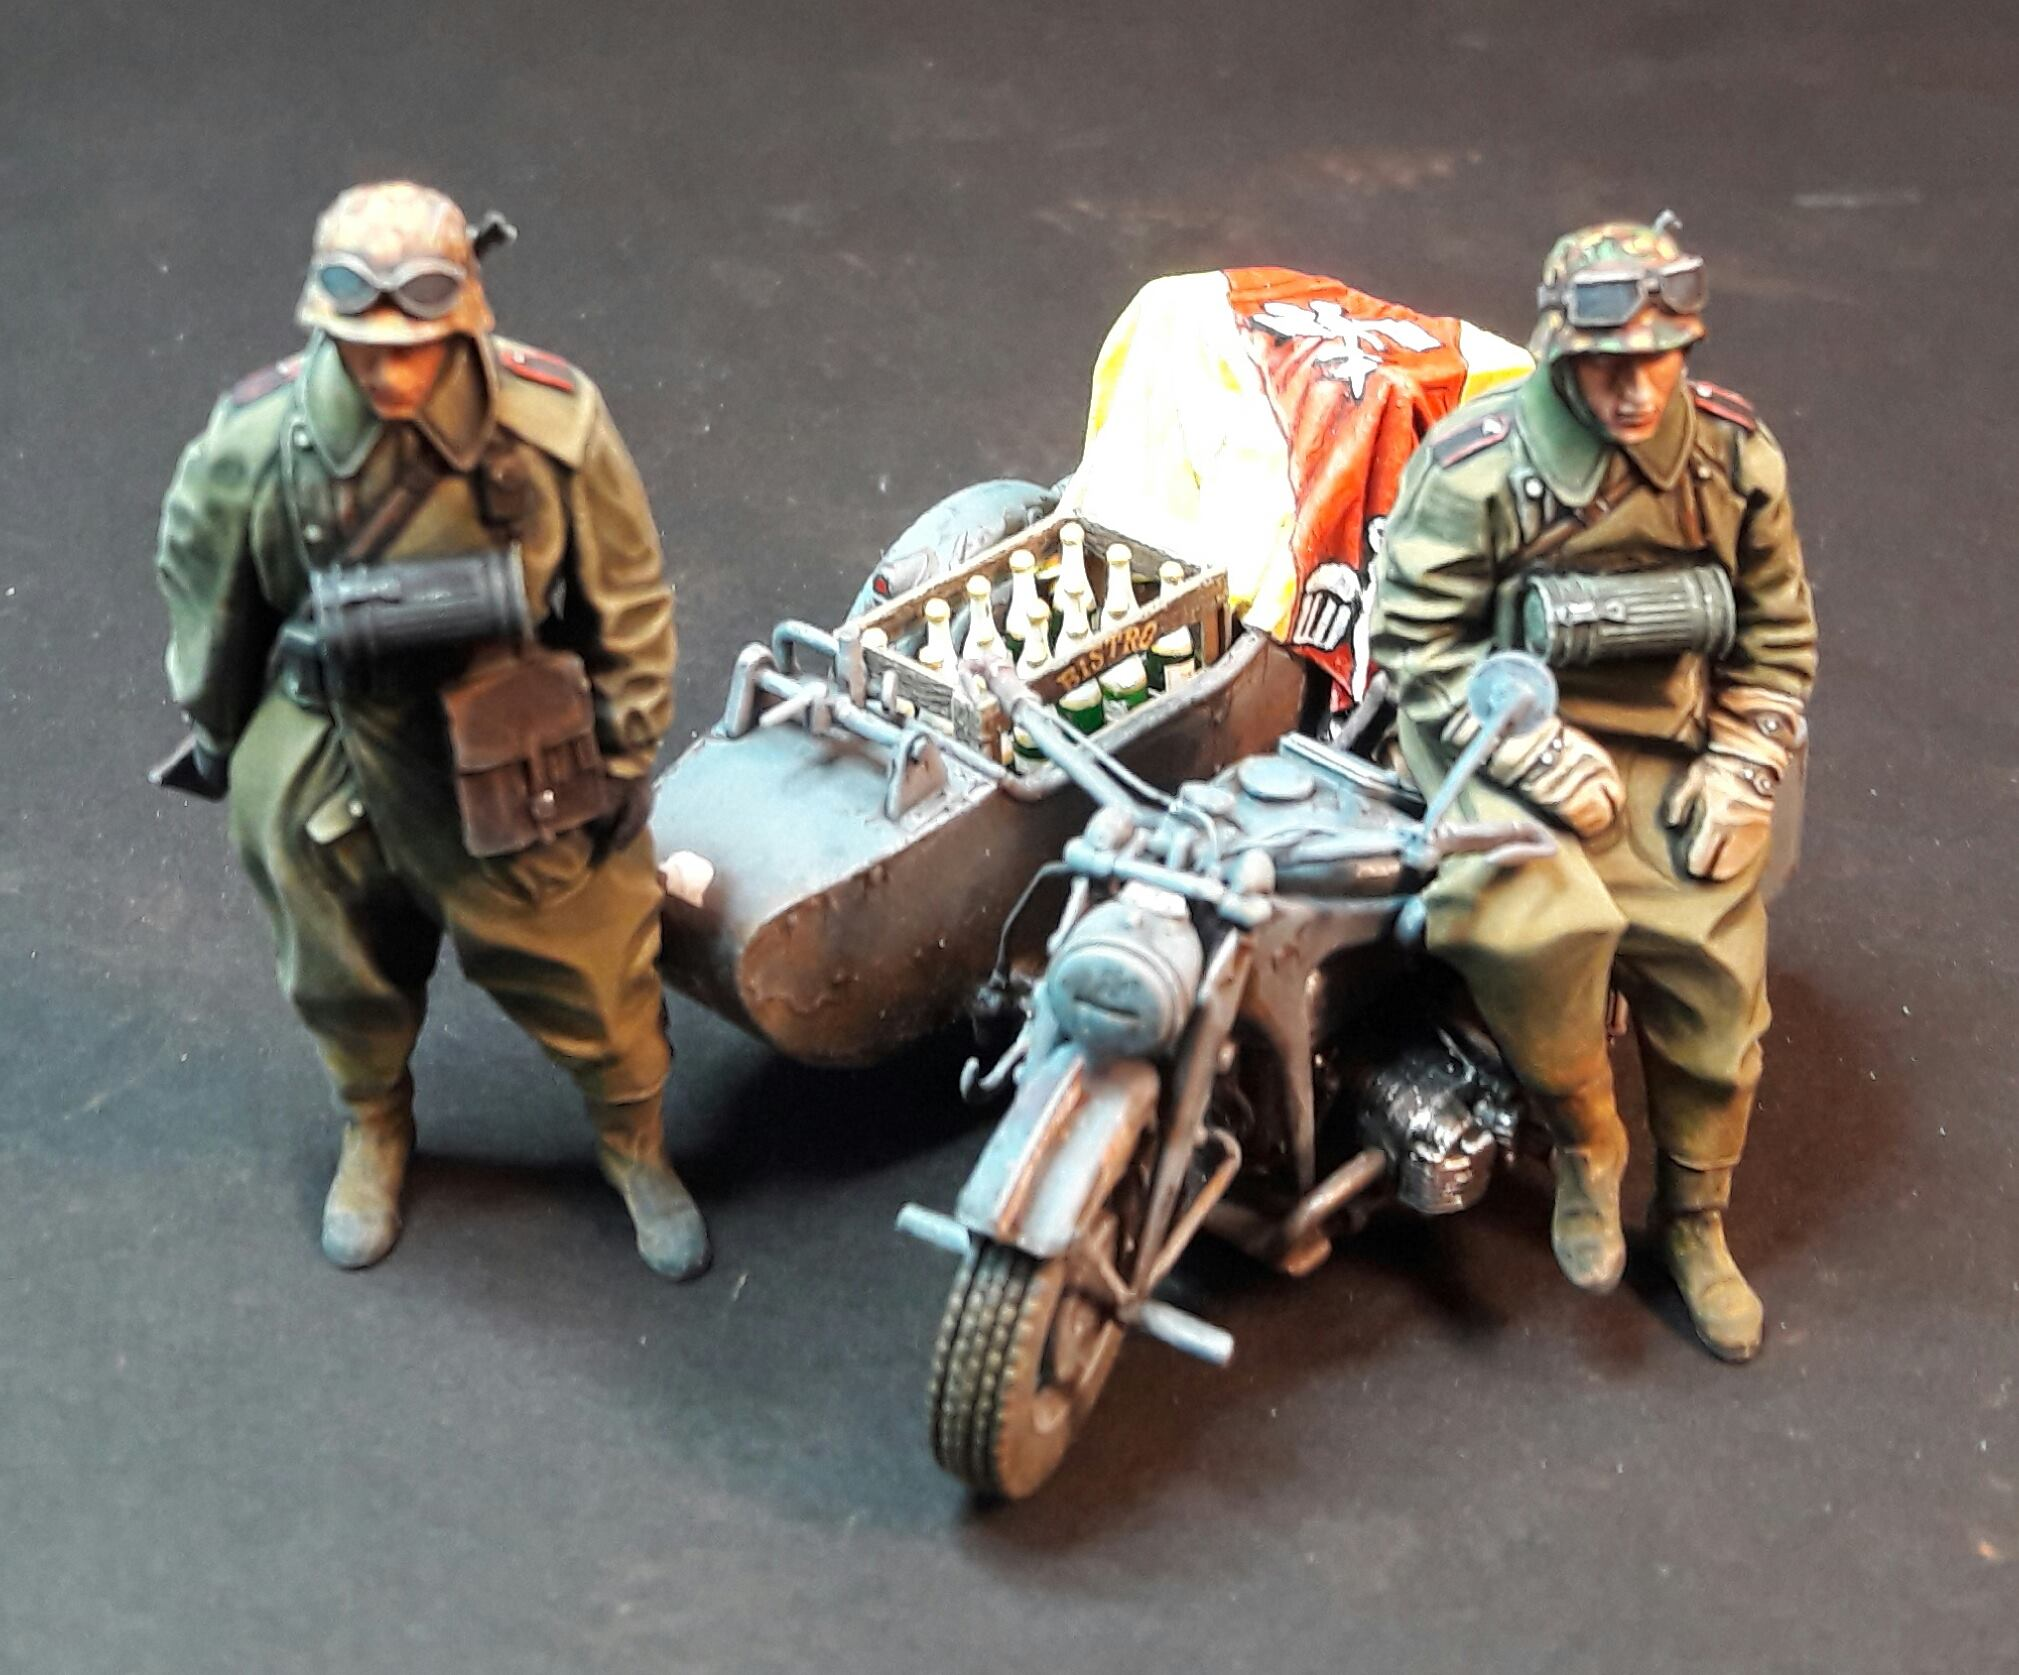 Zündapp KS750 - Sidecar - Great Wall Hobby + figurines Alpine - 1/35 - Page 5 69672319911803102117868058001422136970565o